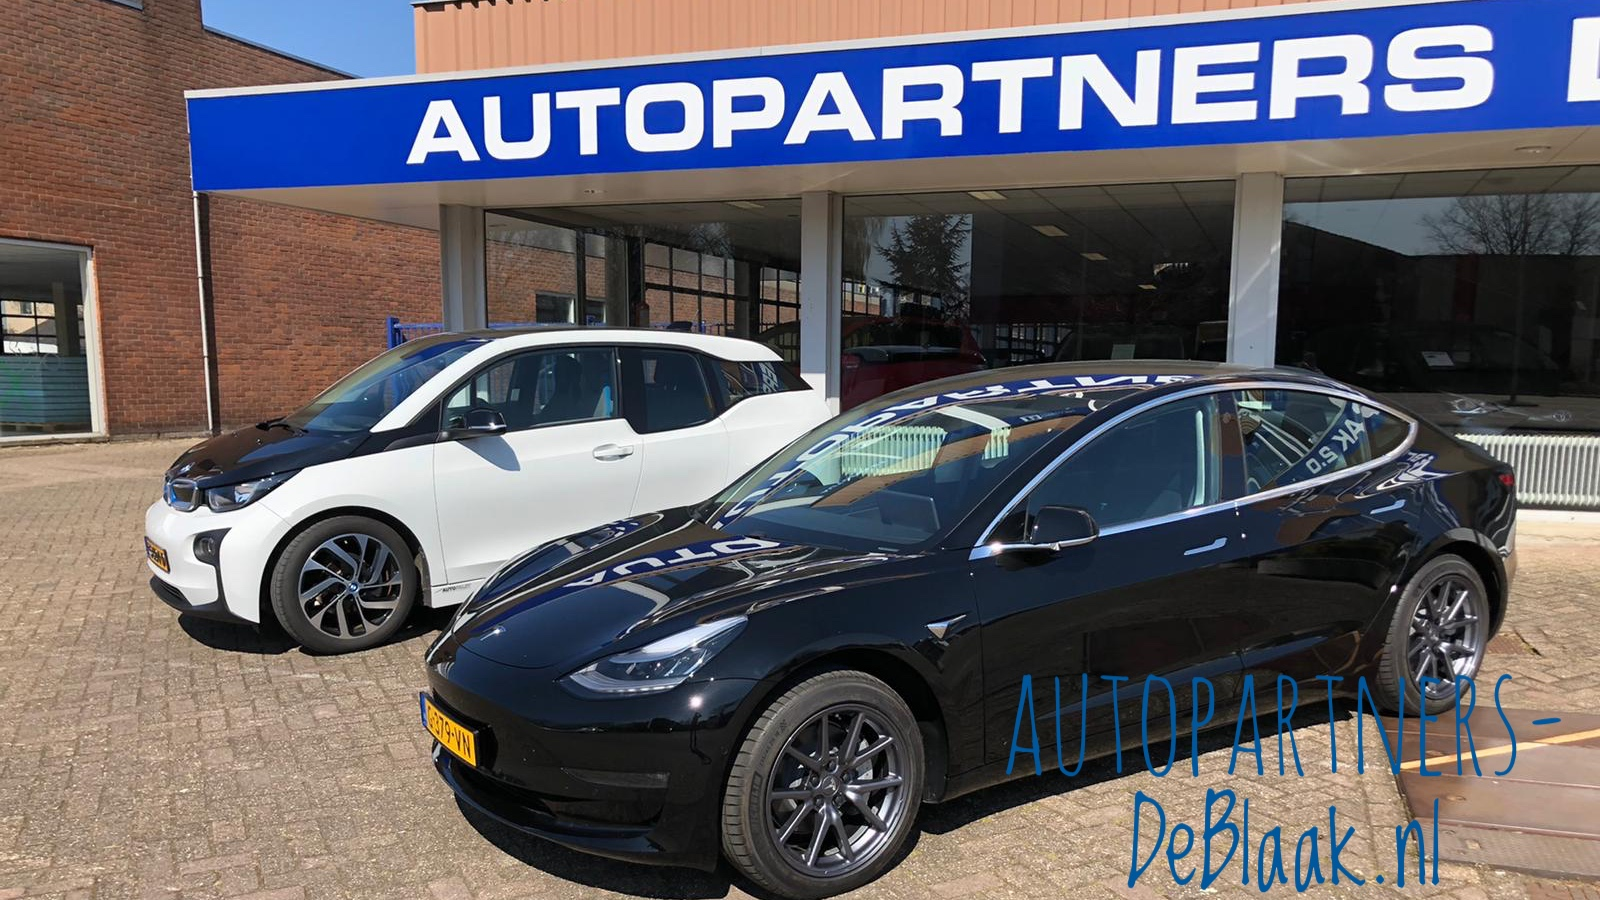 De showroom van Autopartners De Blaak aan de P.C. Hooftstraat in Ridderkerk